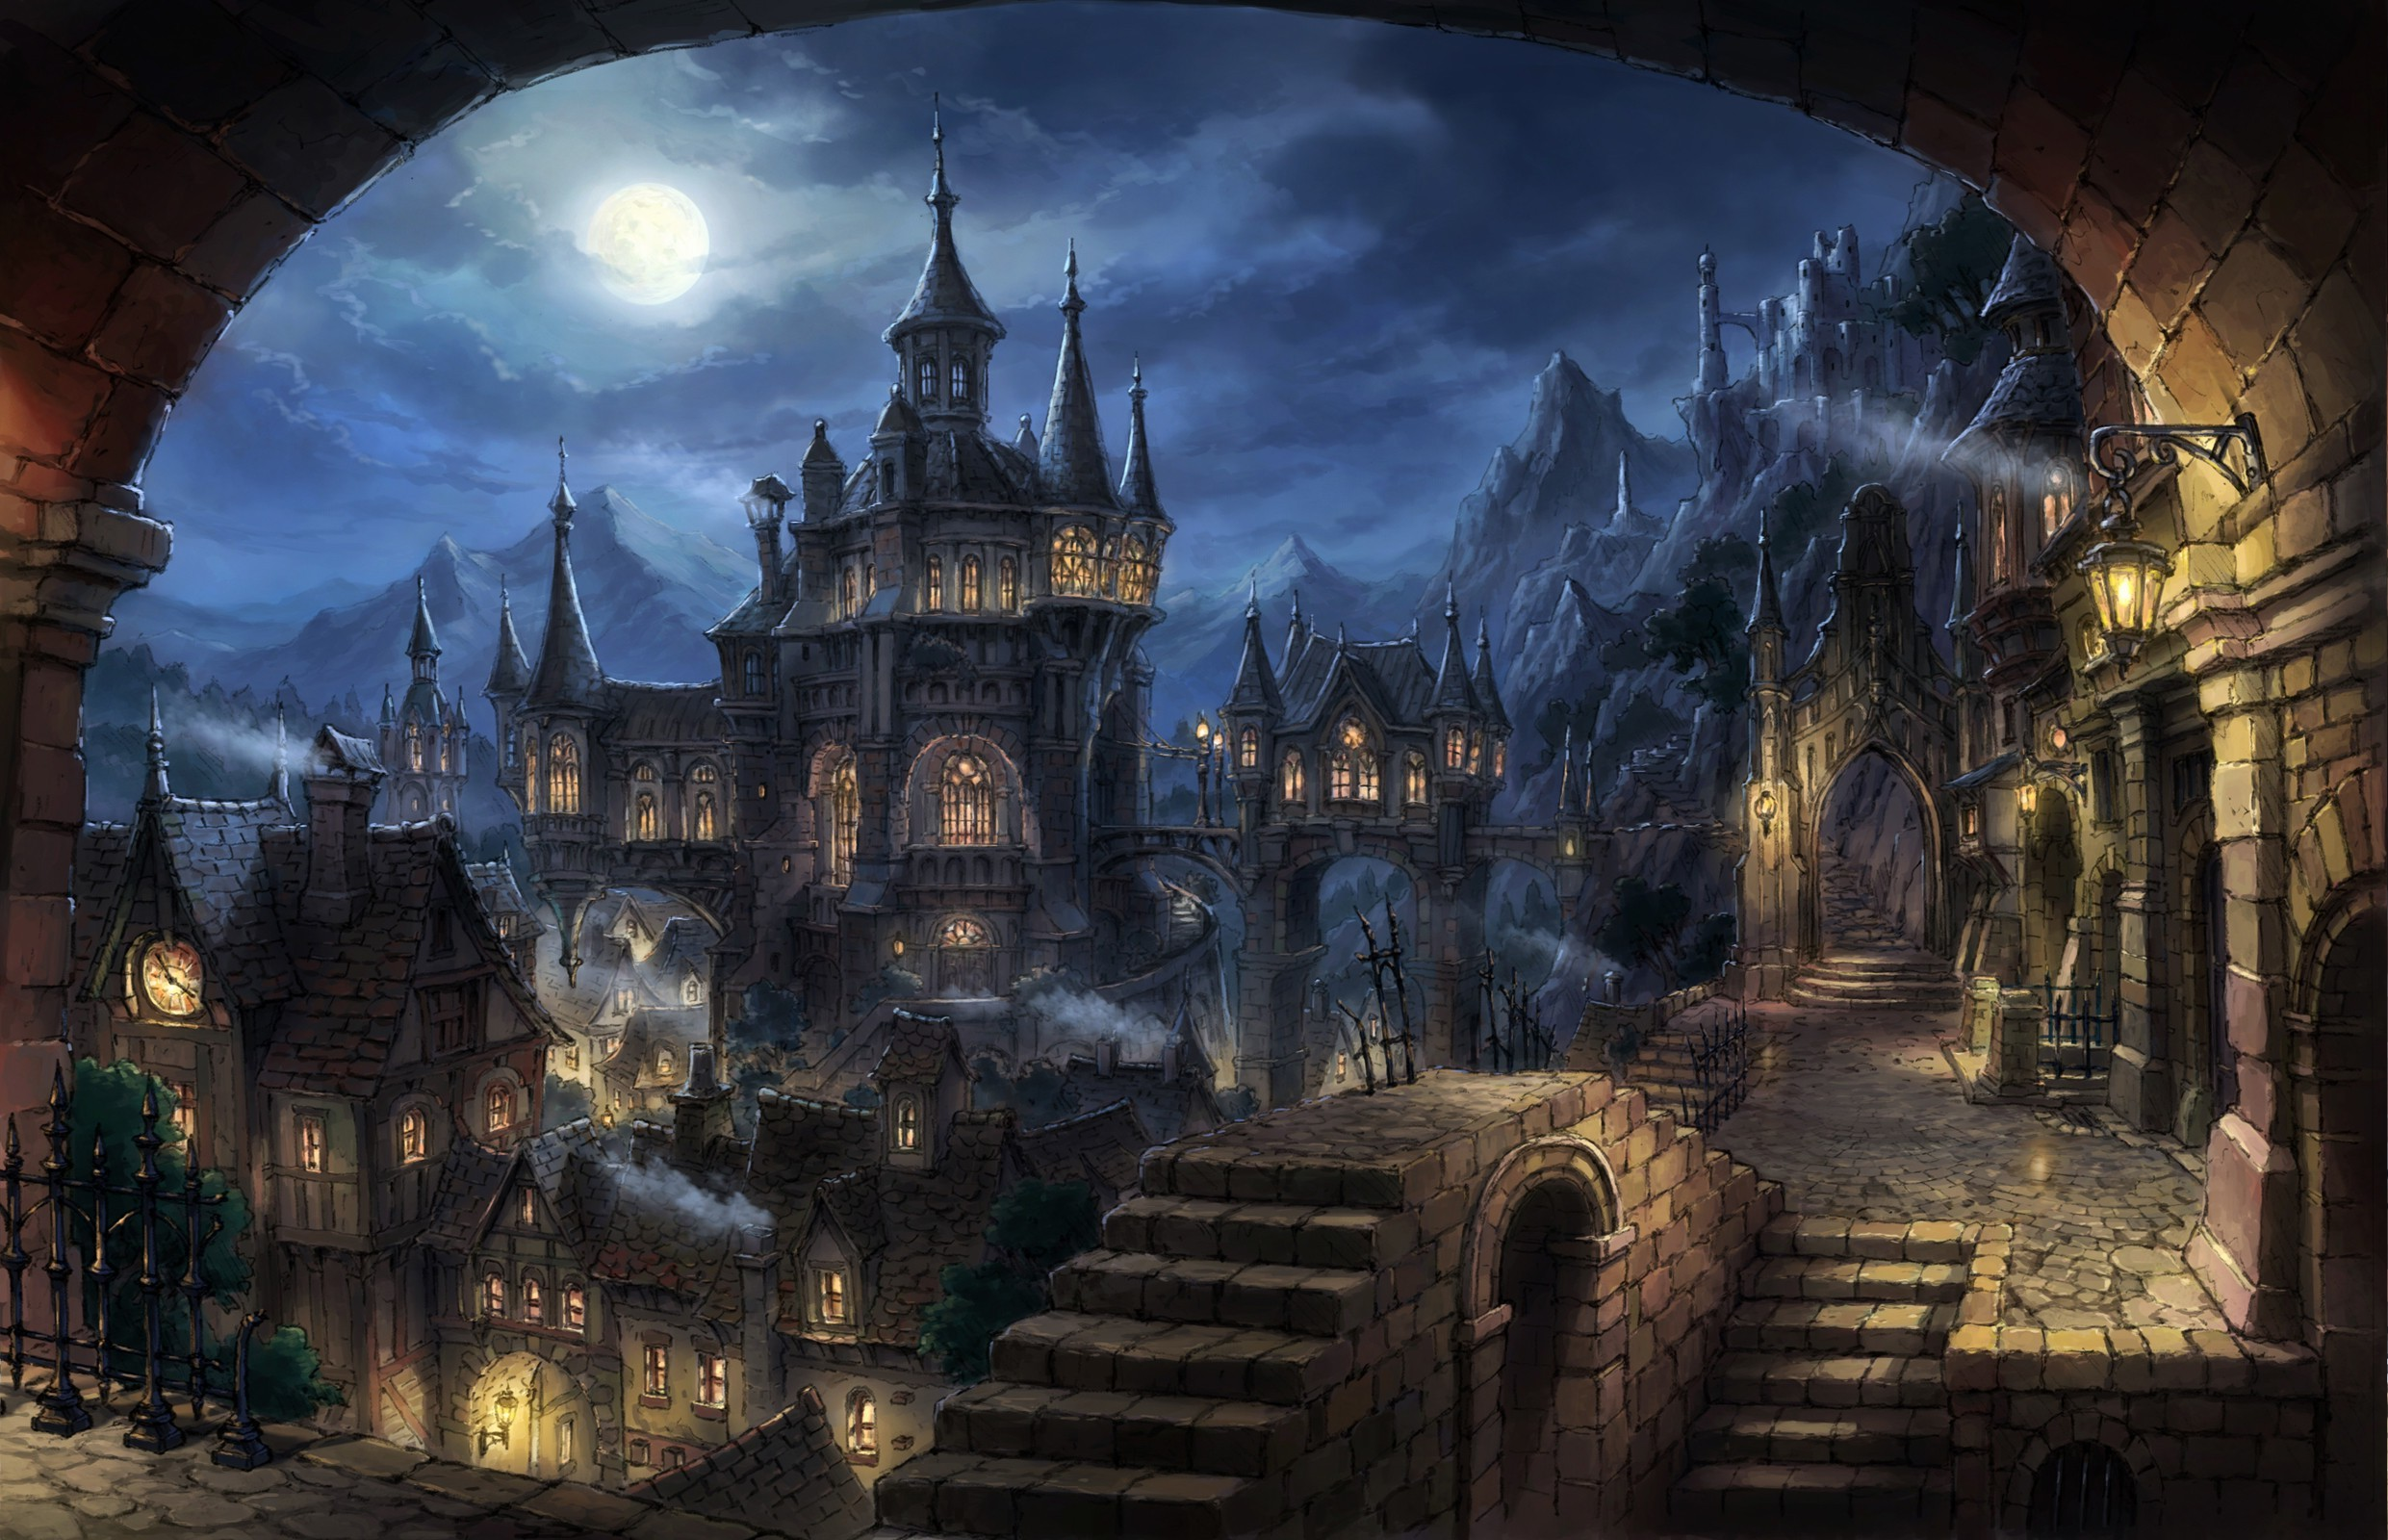 Dark fantasy background 71 images - Art village wallpaper ...